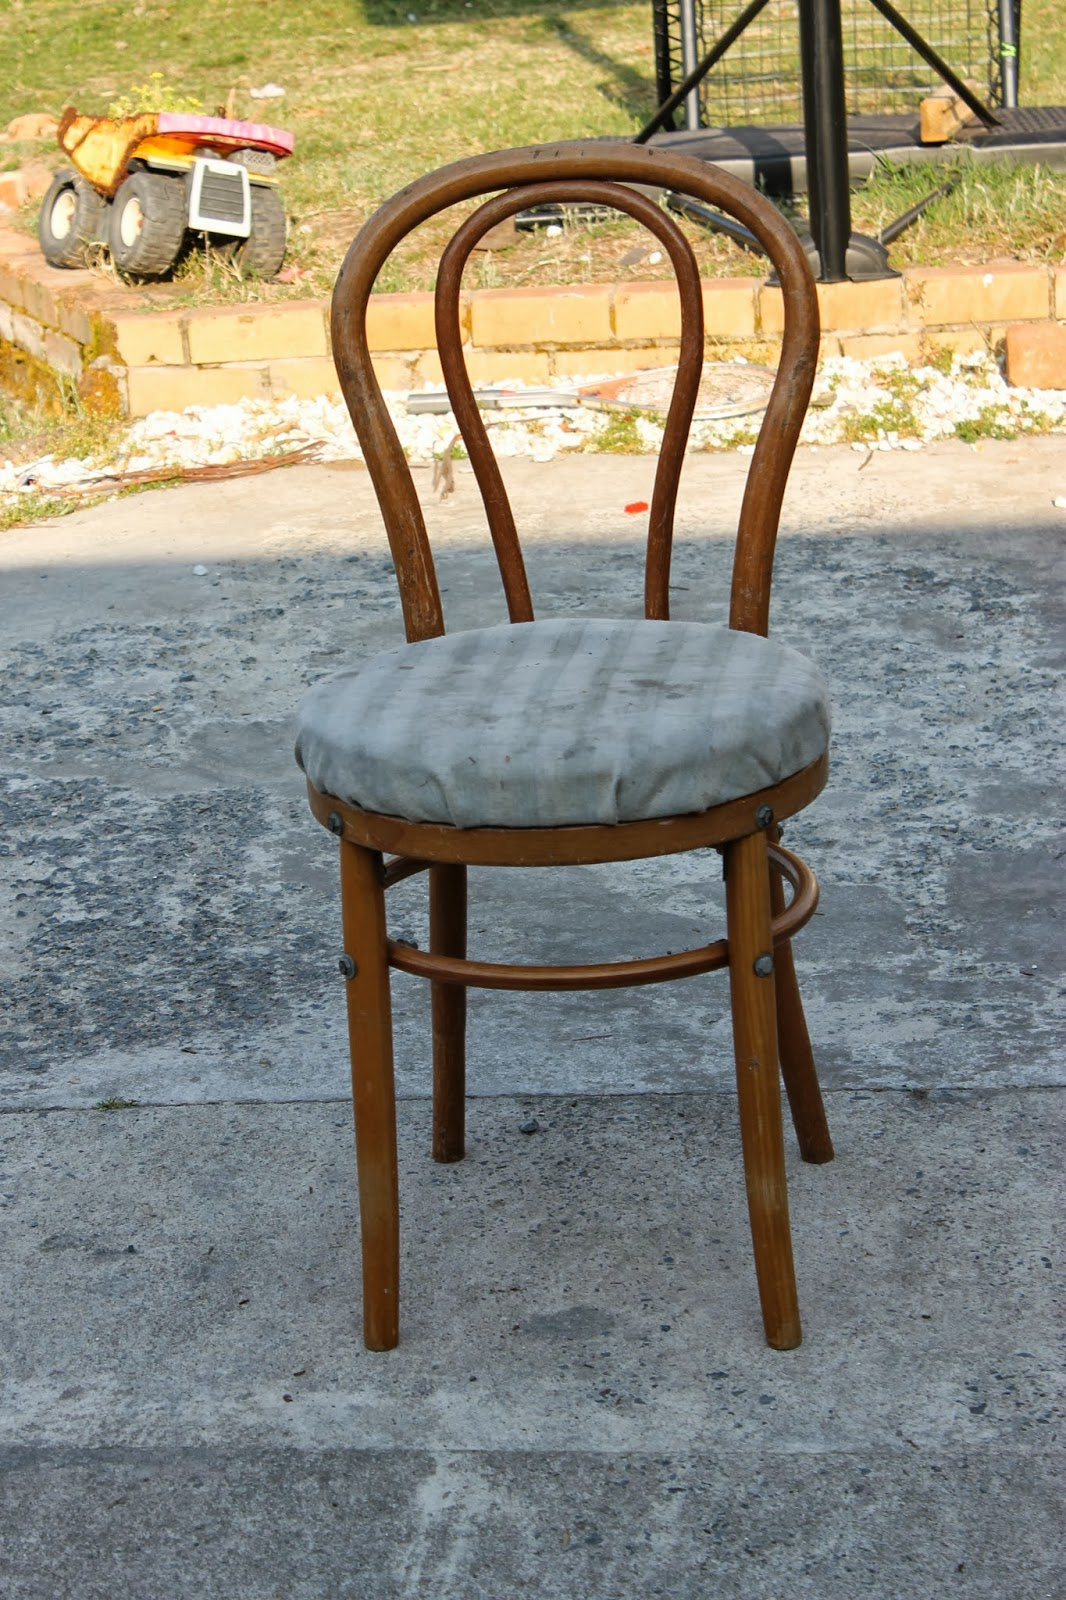 Chair Stool Difference Hanging Round Five Brothers One Sister Planters With A